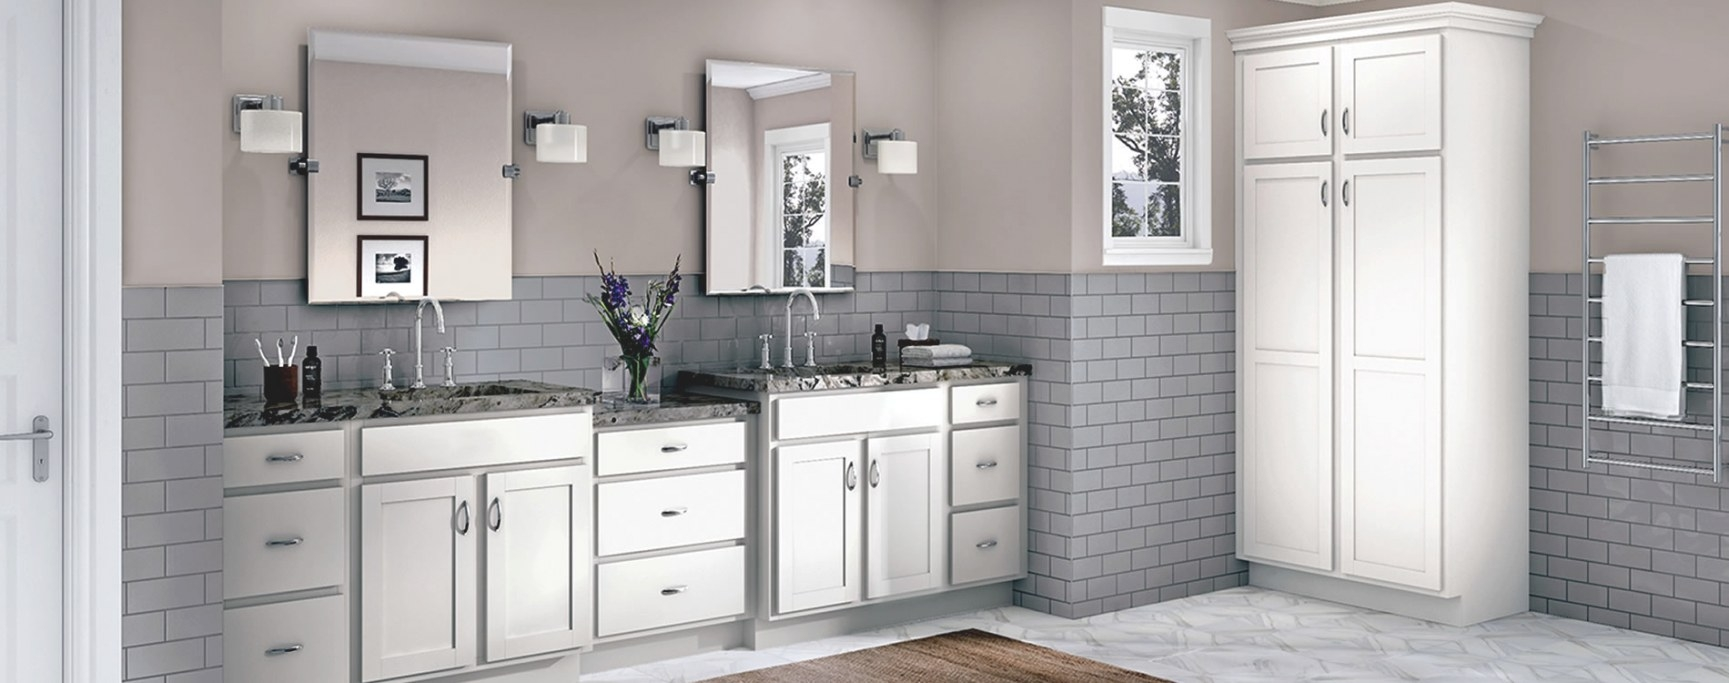 Kitchen Bathroom Cabinets Company | Great American Kitchen regarding American Kitchen And Bath